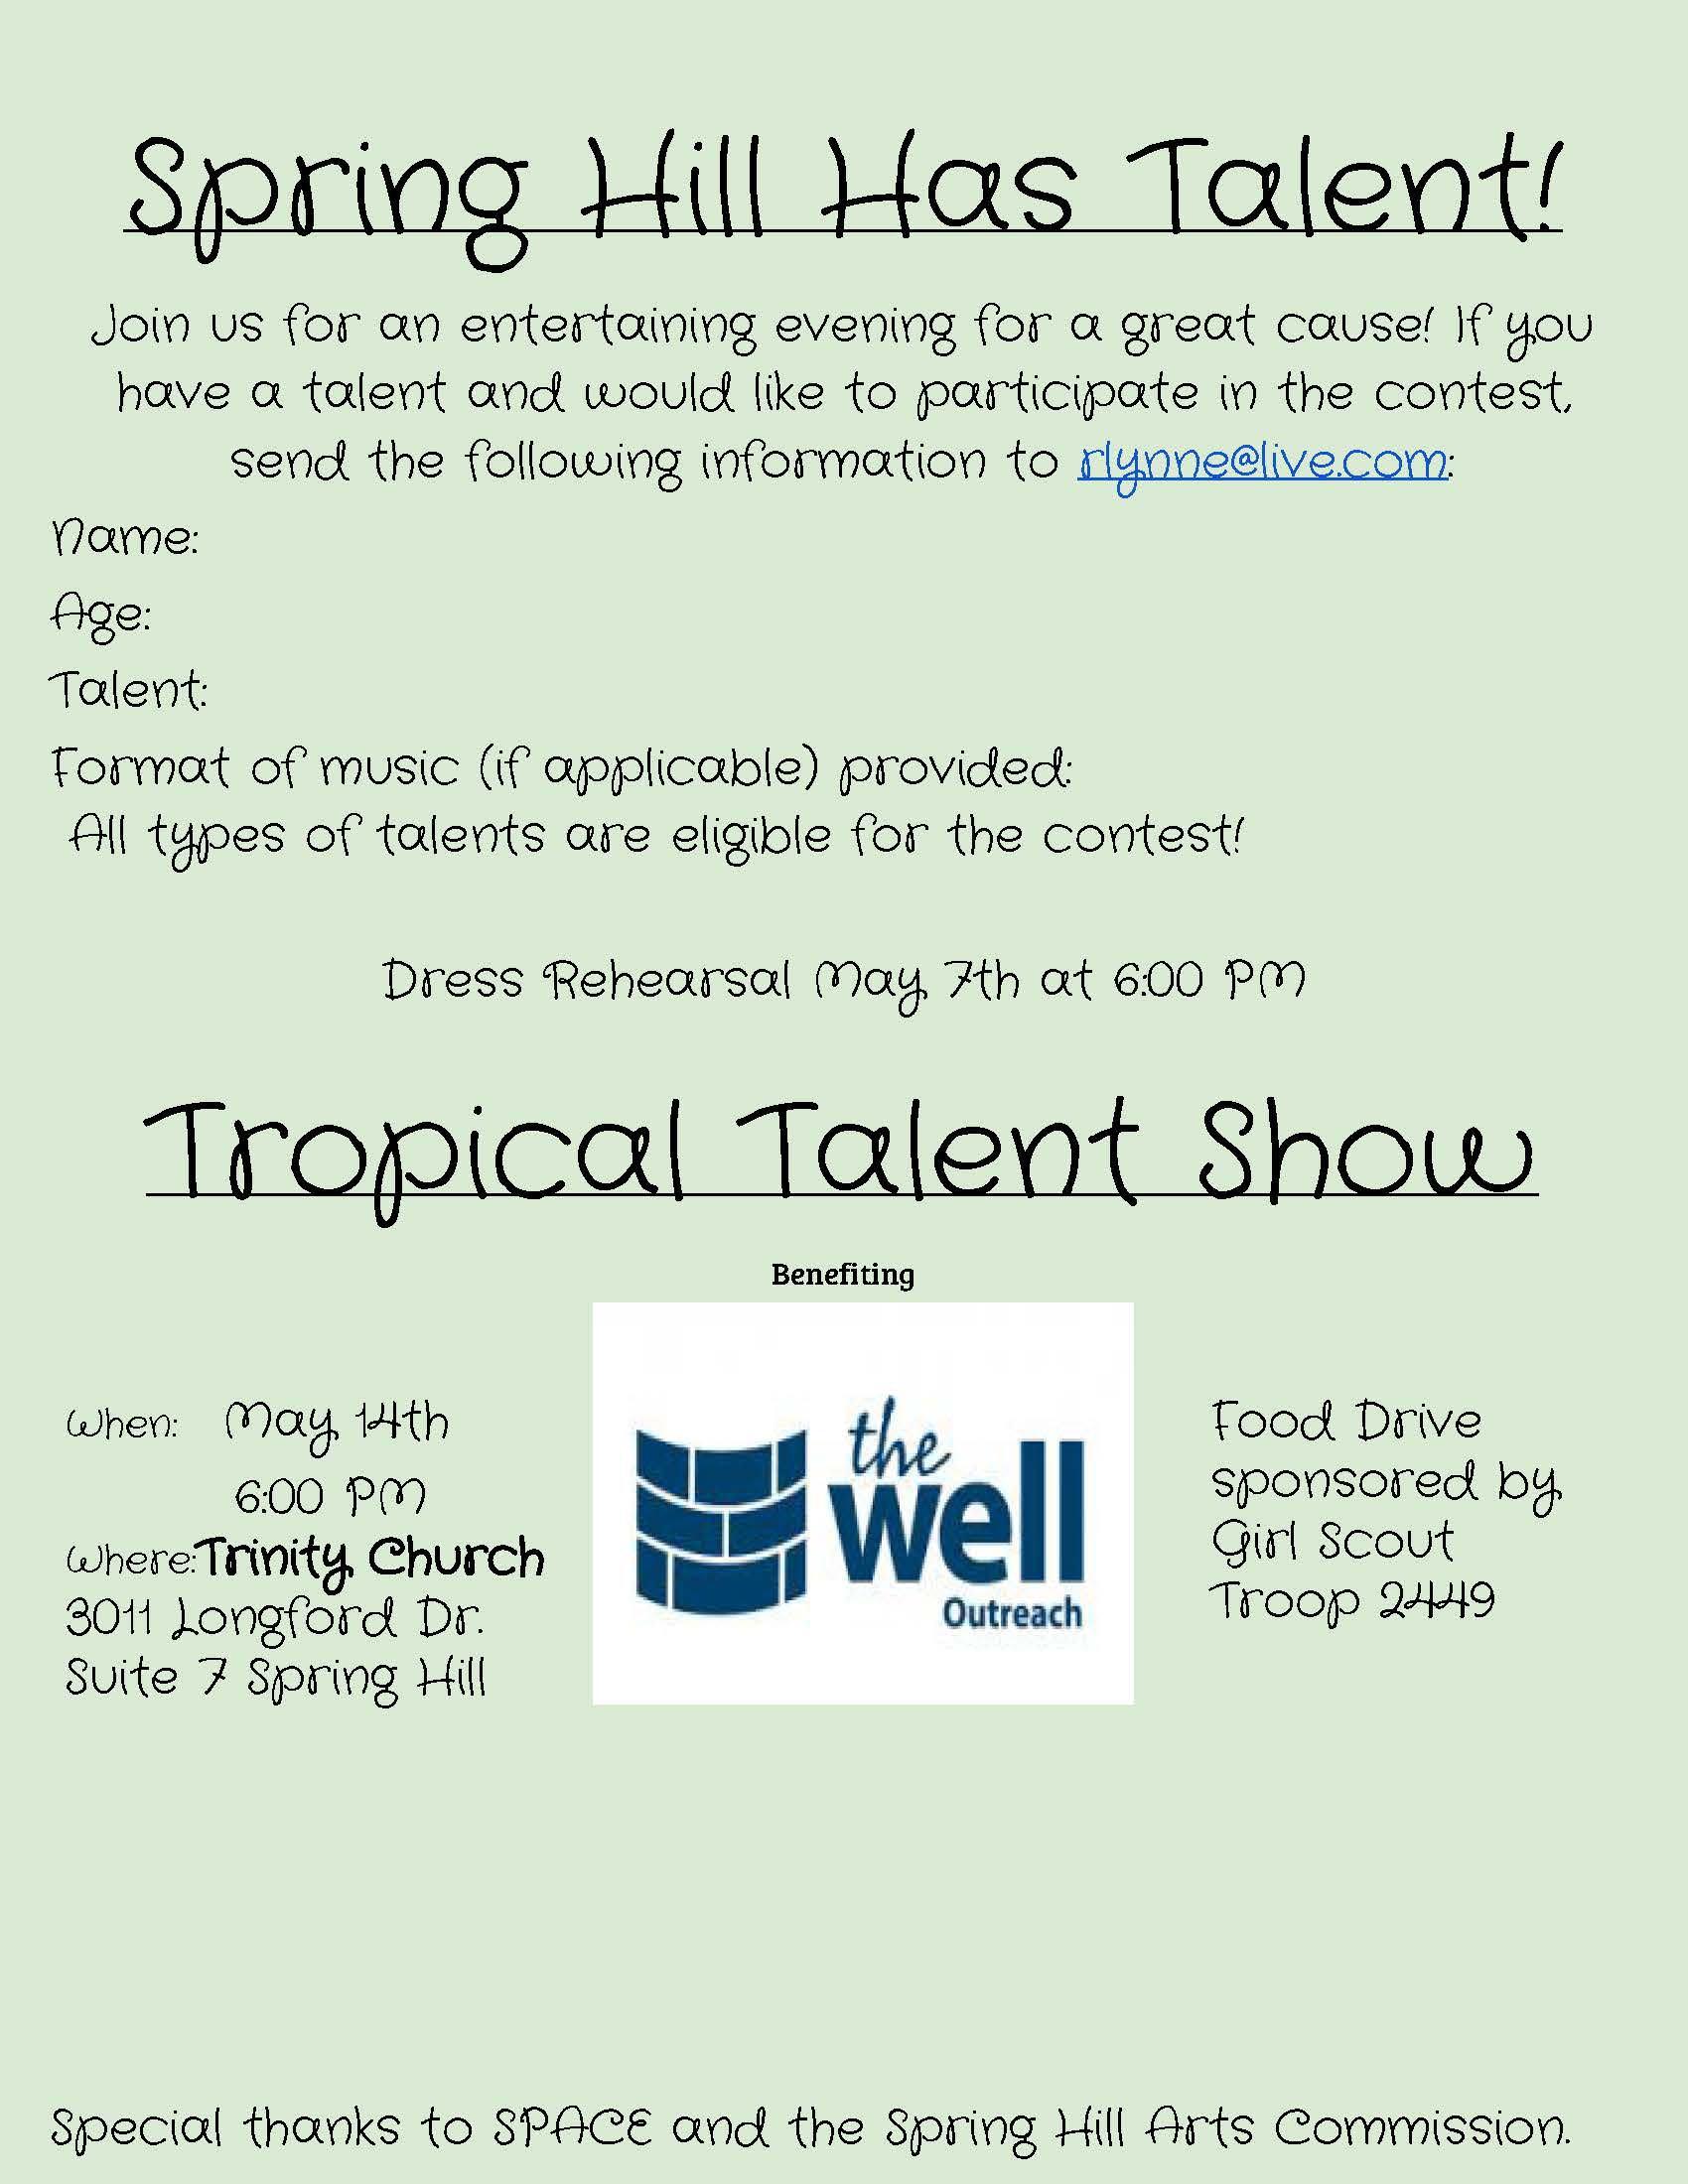 Tropical Talent Show